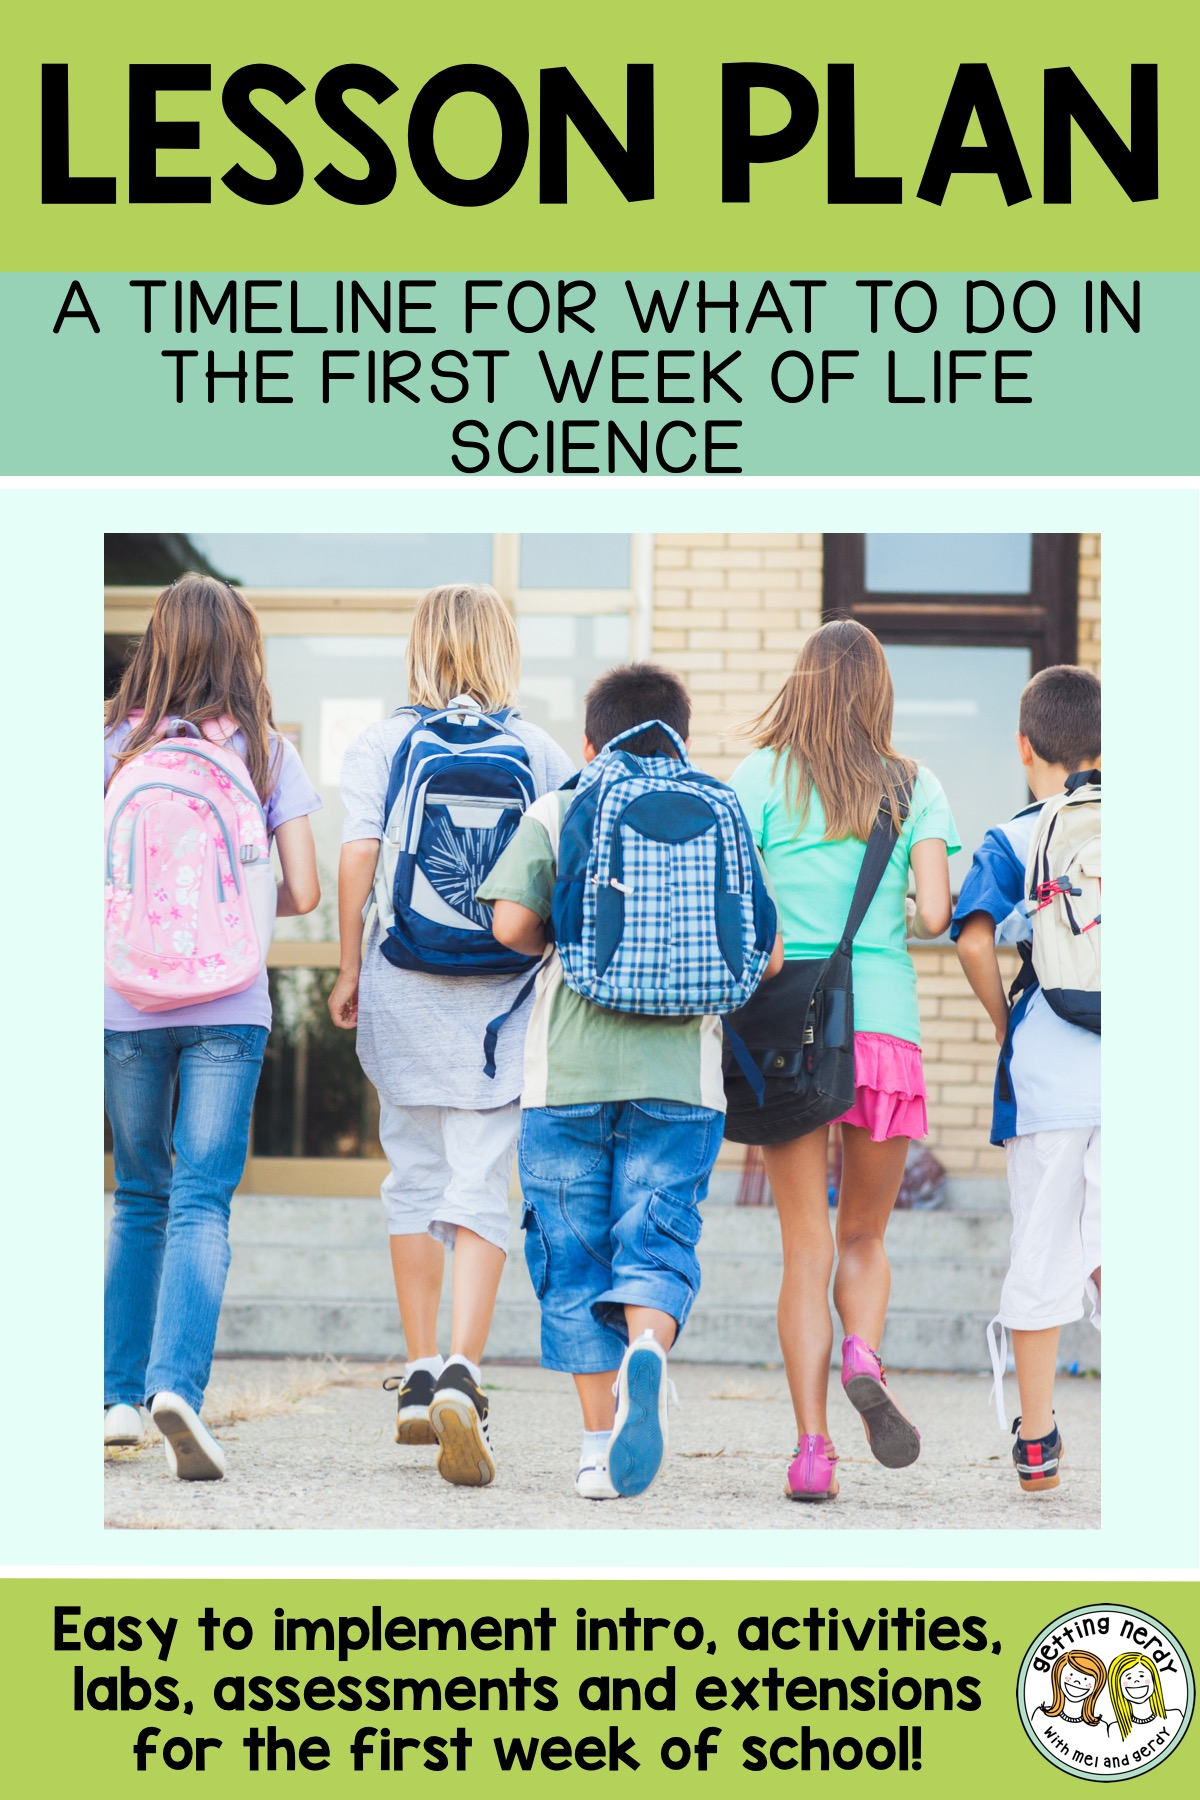 Set the tone for the rest of the year with this first week back to school timeline and lesson plan #gettingnerdyscience #firstweekofschool #backtoschool